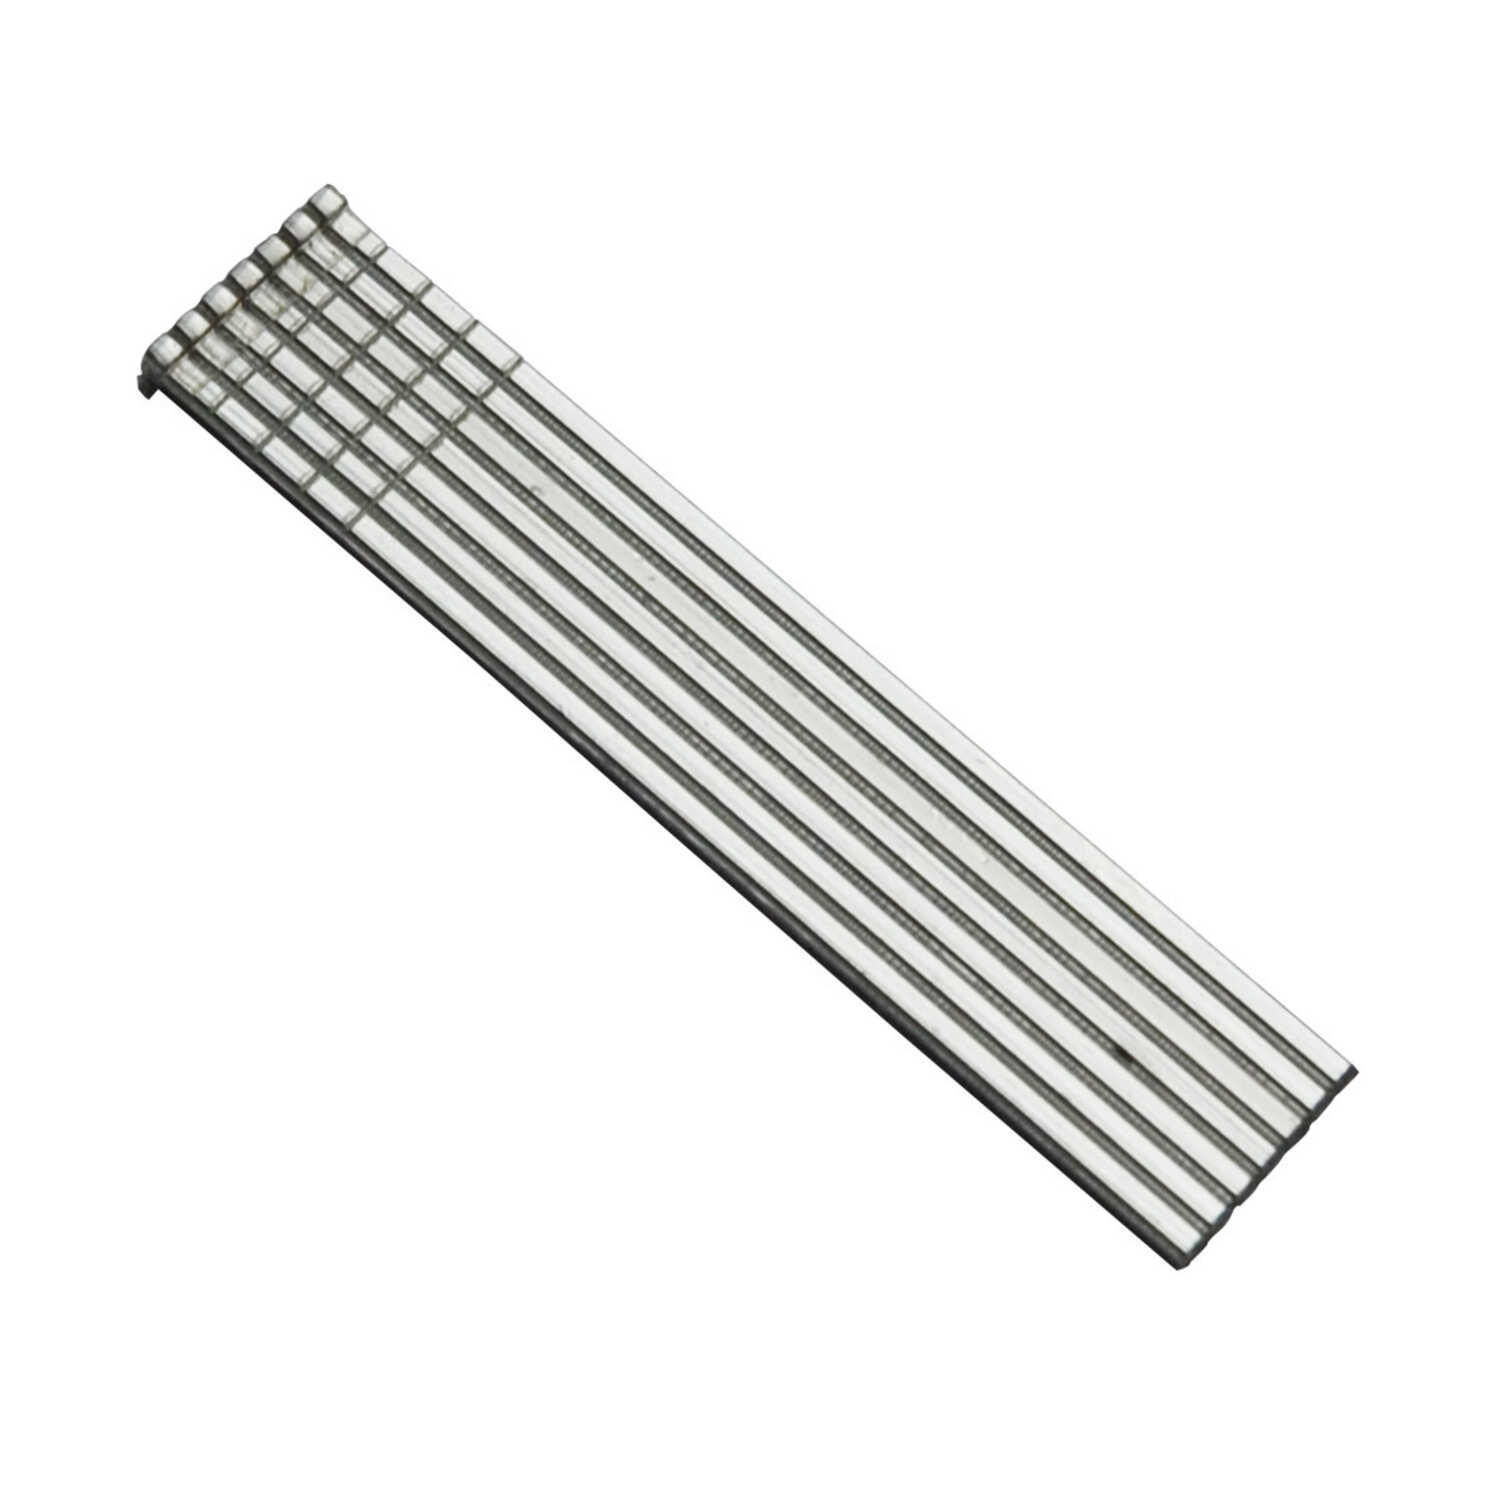 Grip-Rite  18 Ga. Smooth Shank  Straight Strip  Brad Nails  2 in. L x 0.05 in. Dia. 5000 count